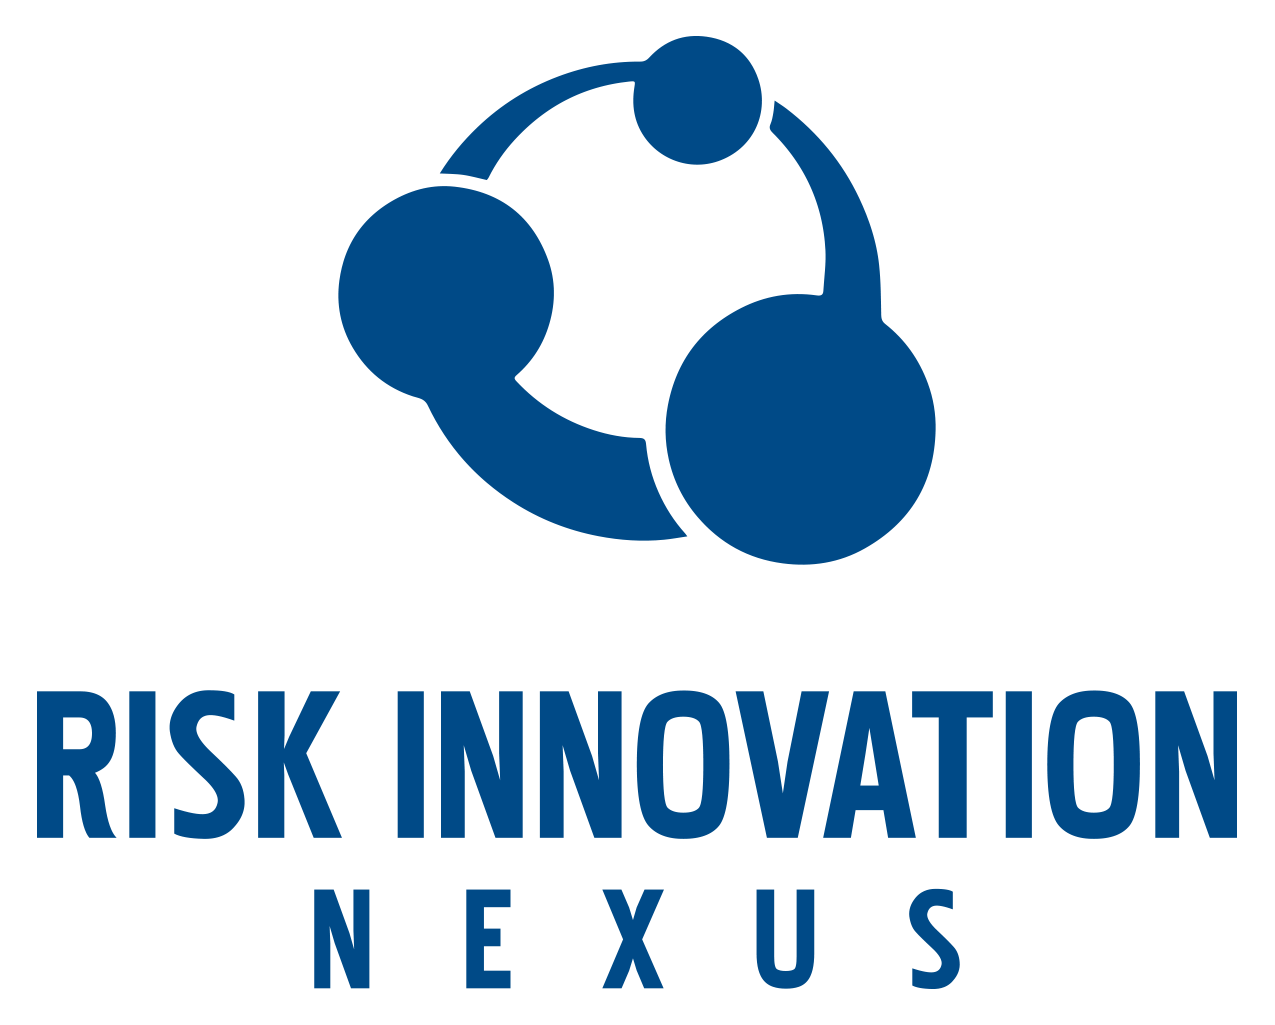 Risk Innovation